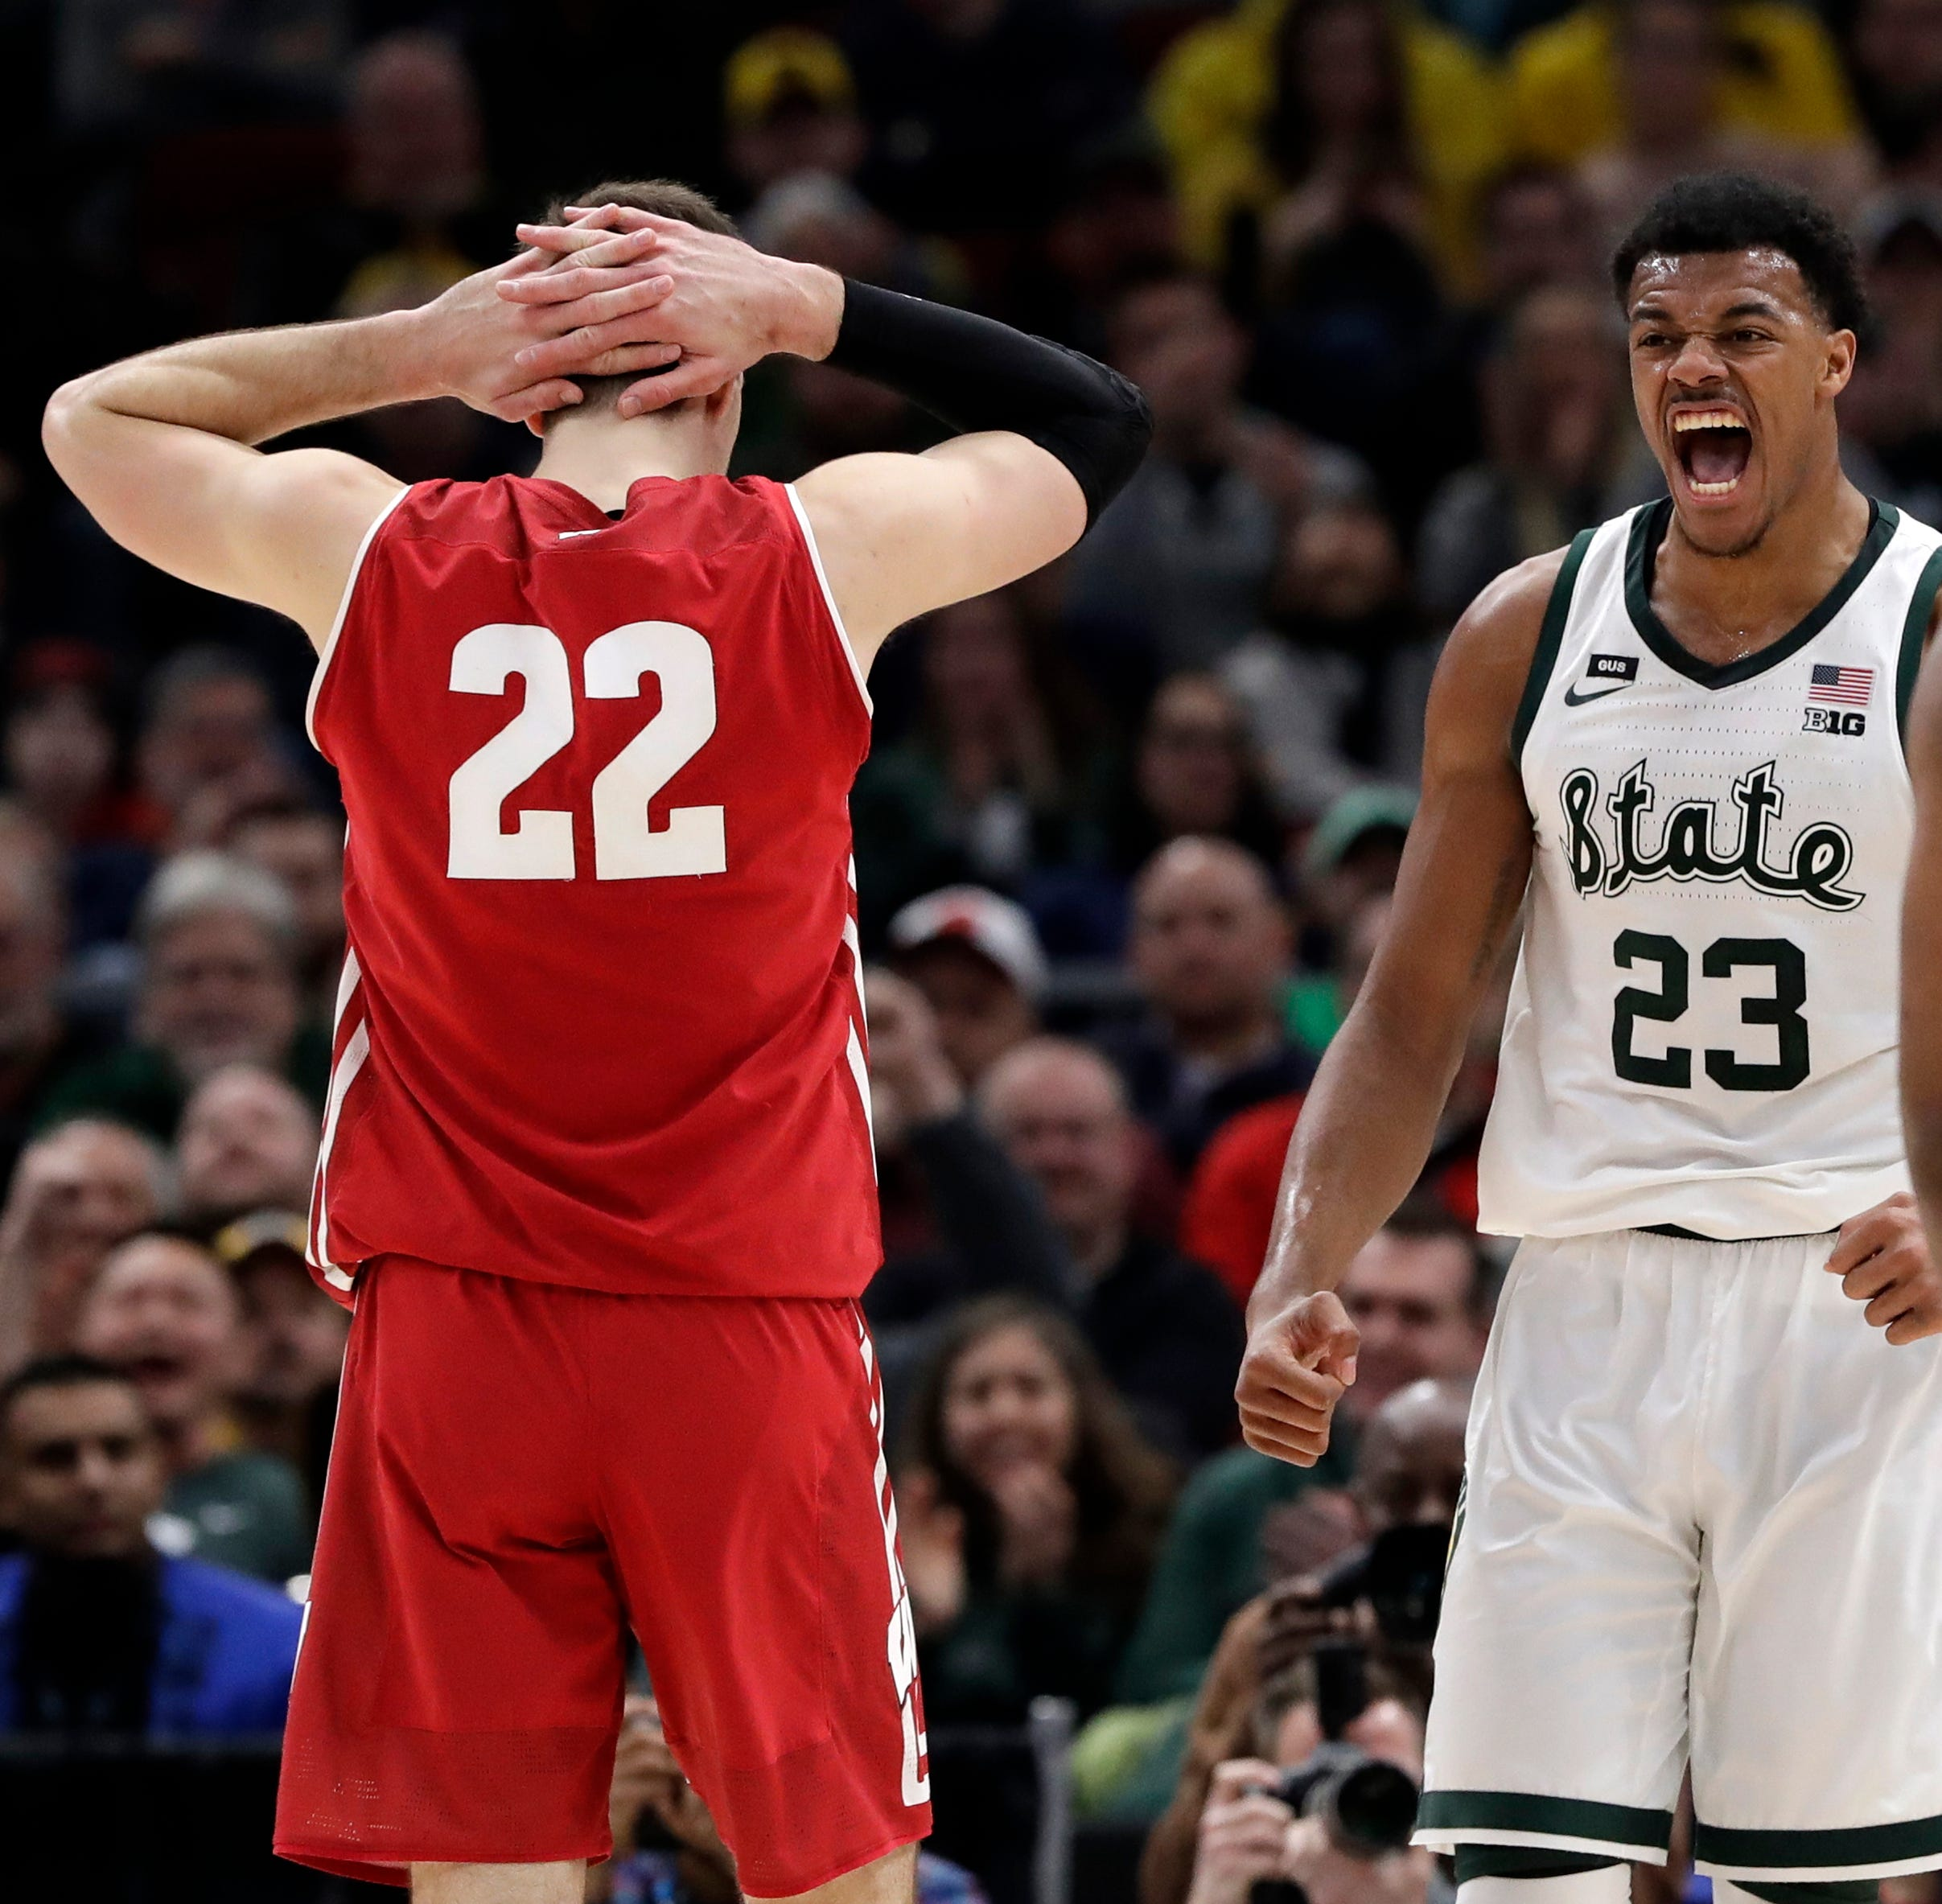 Couch: 3 quick takes on Michigan State's Big Ten Tournament win – and the showdown ahead